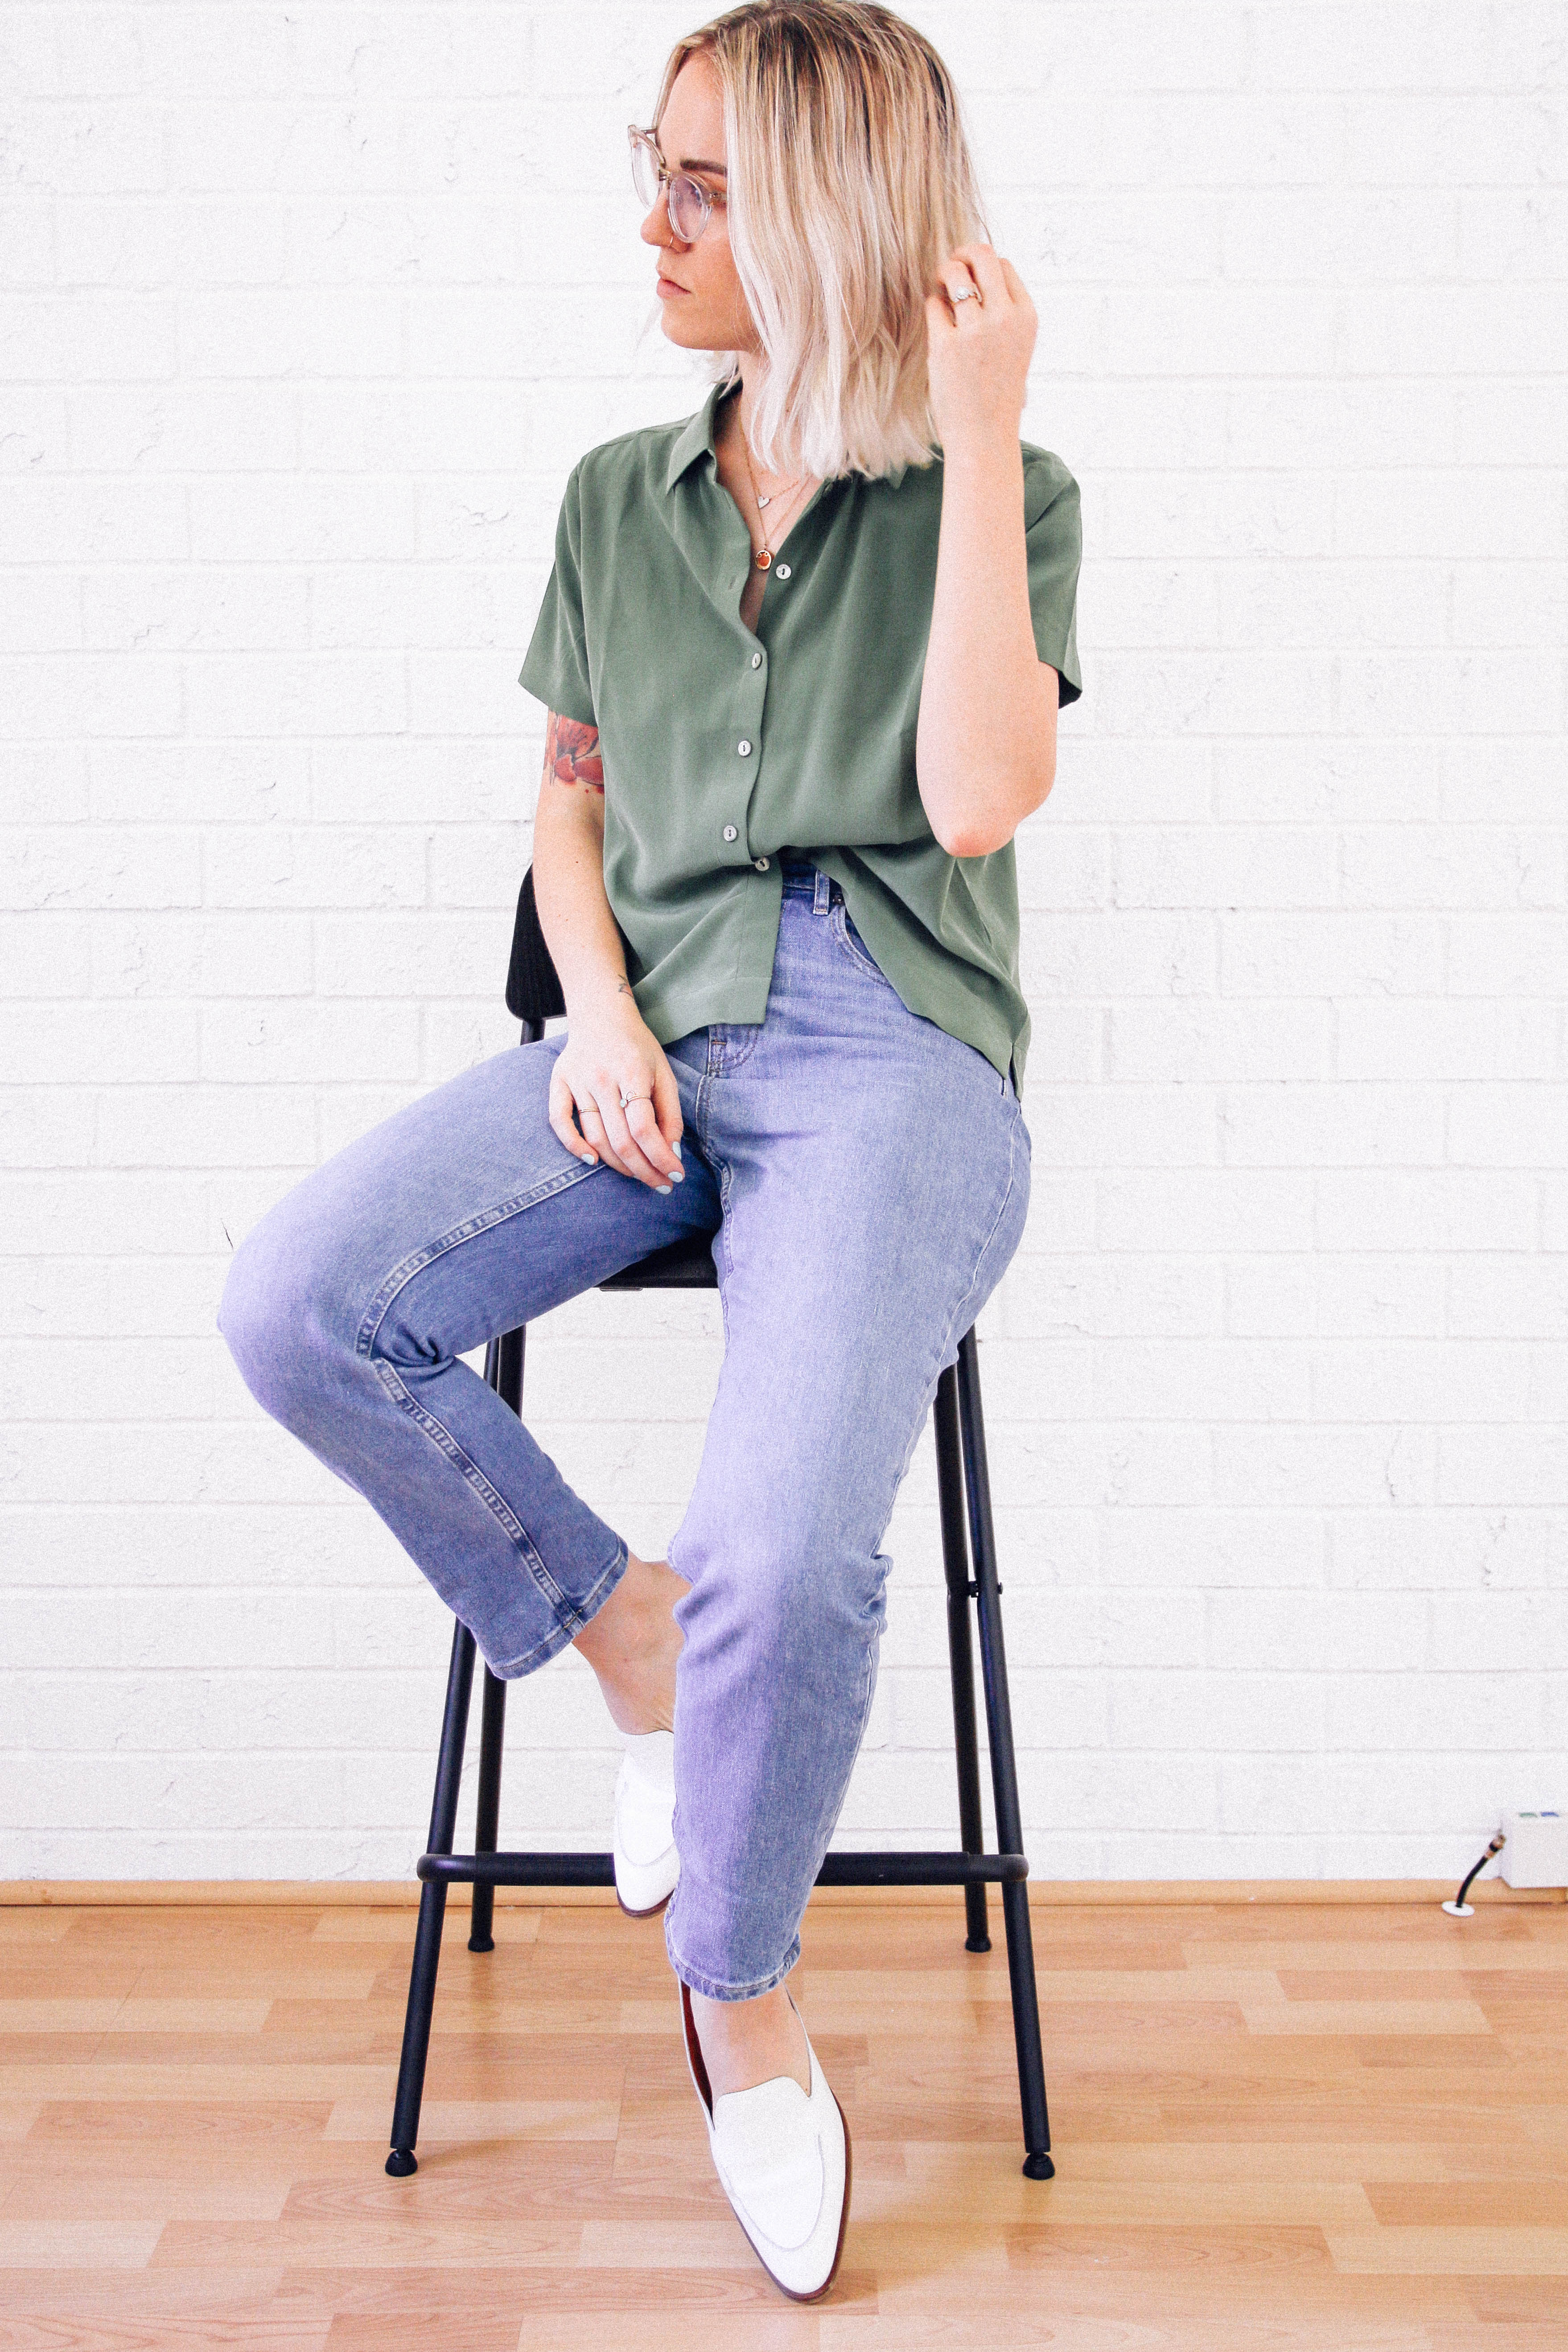 EVERLANE: Classy, cute, ethical AND affordable!